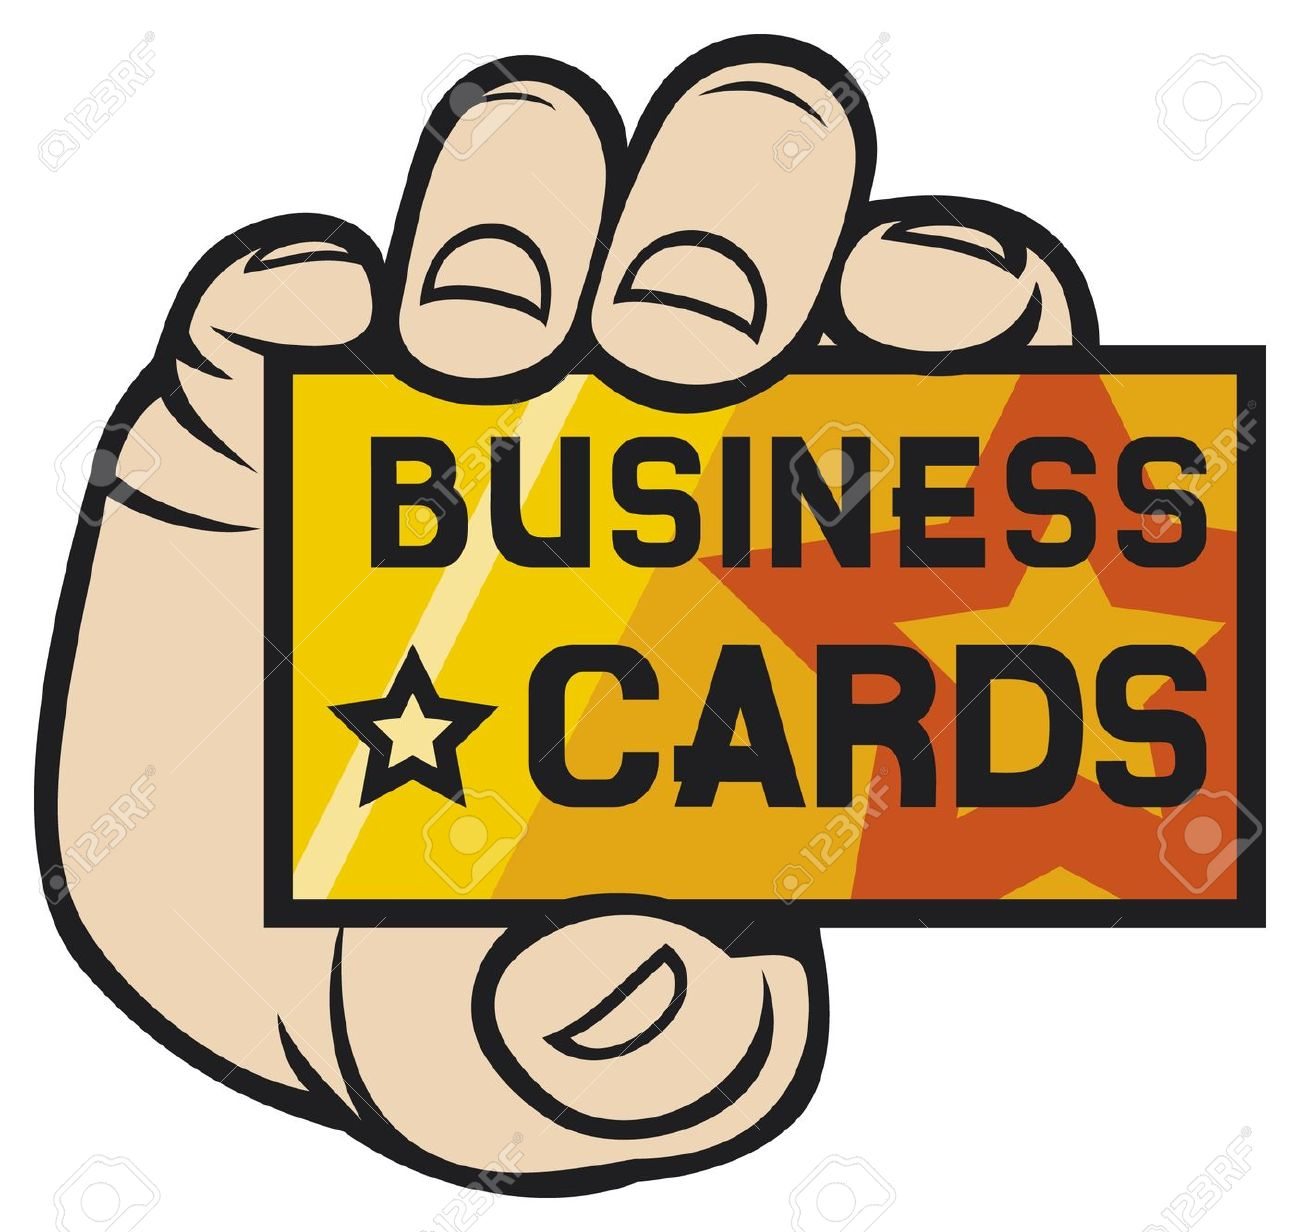 Business Card Clip Art Free.  - Business Card Clip Art